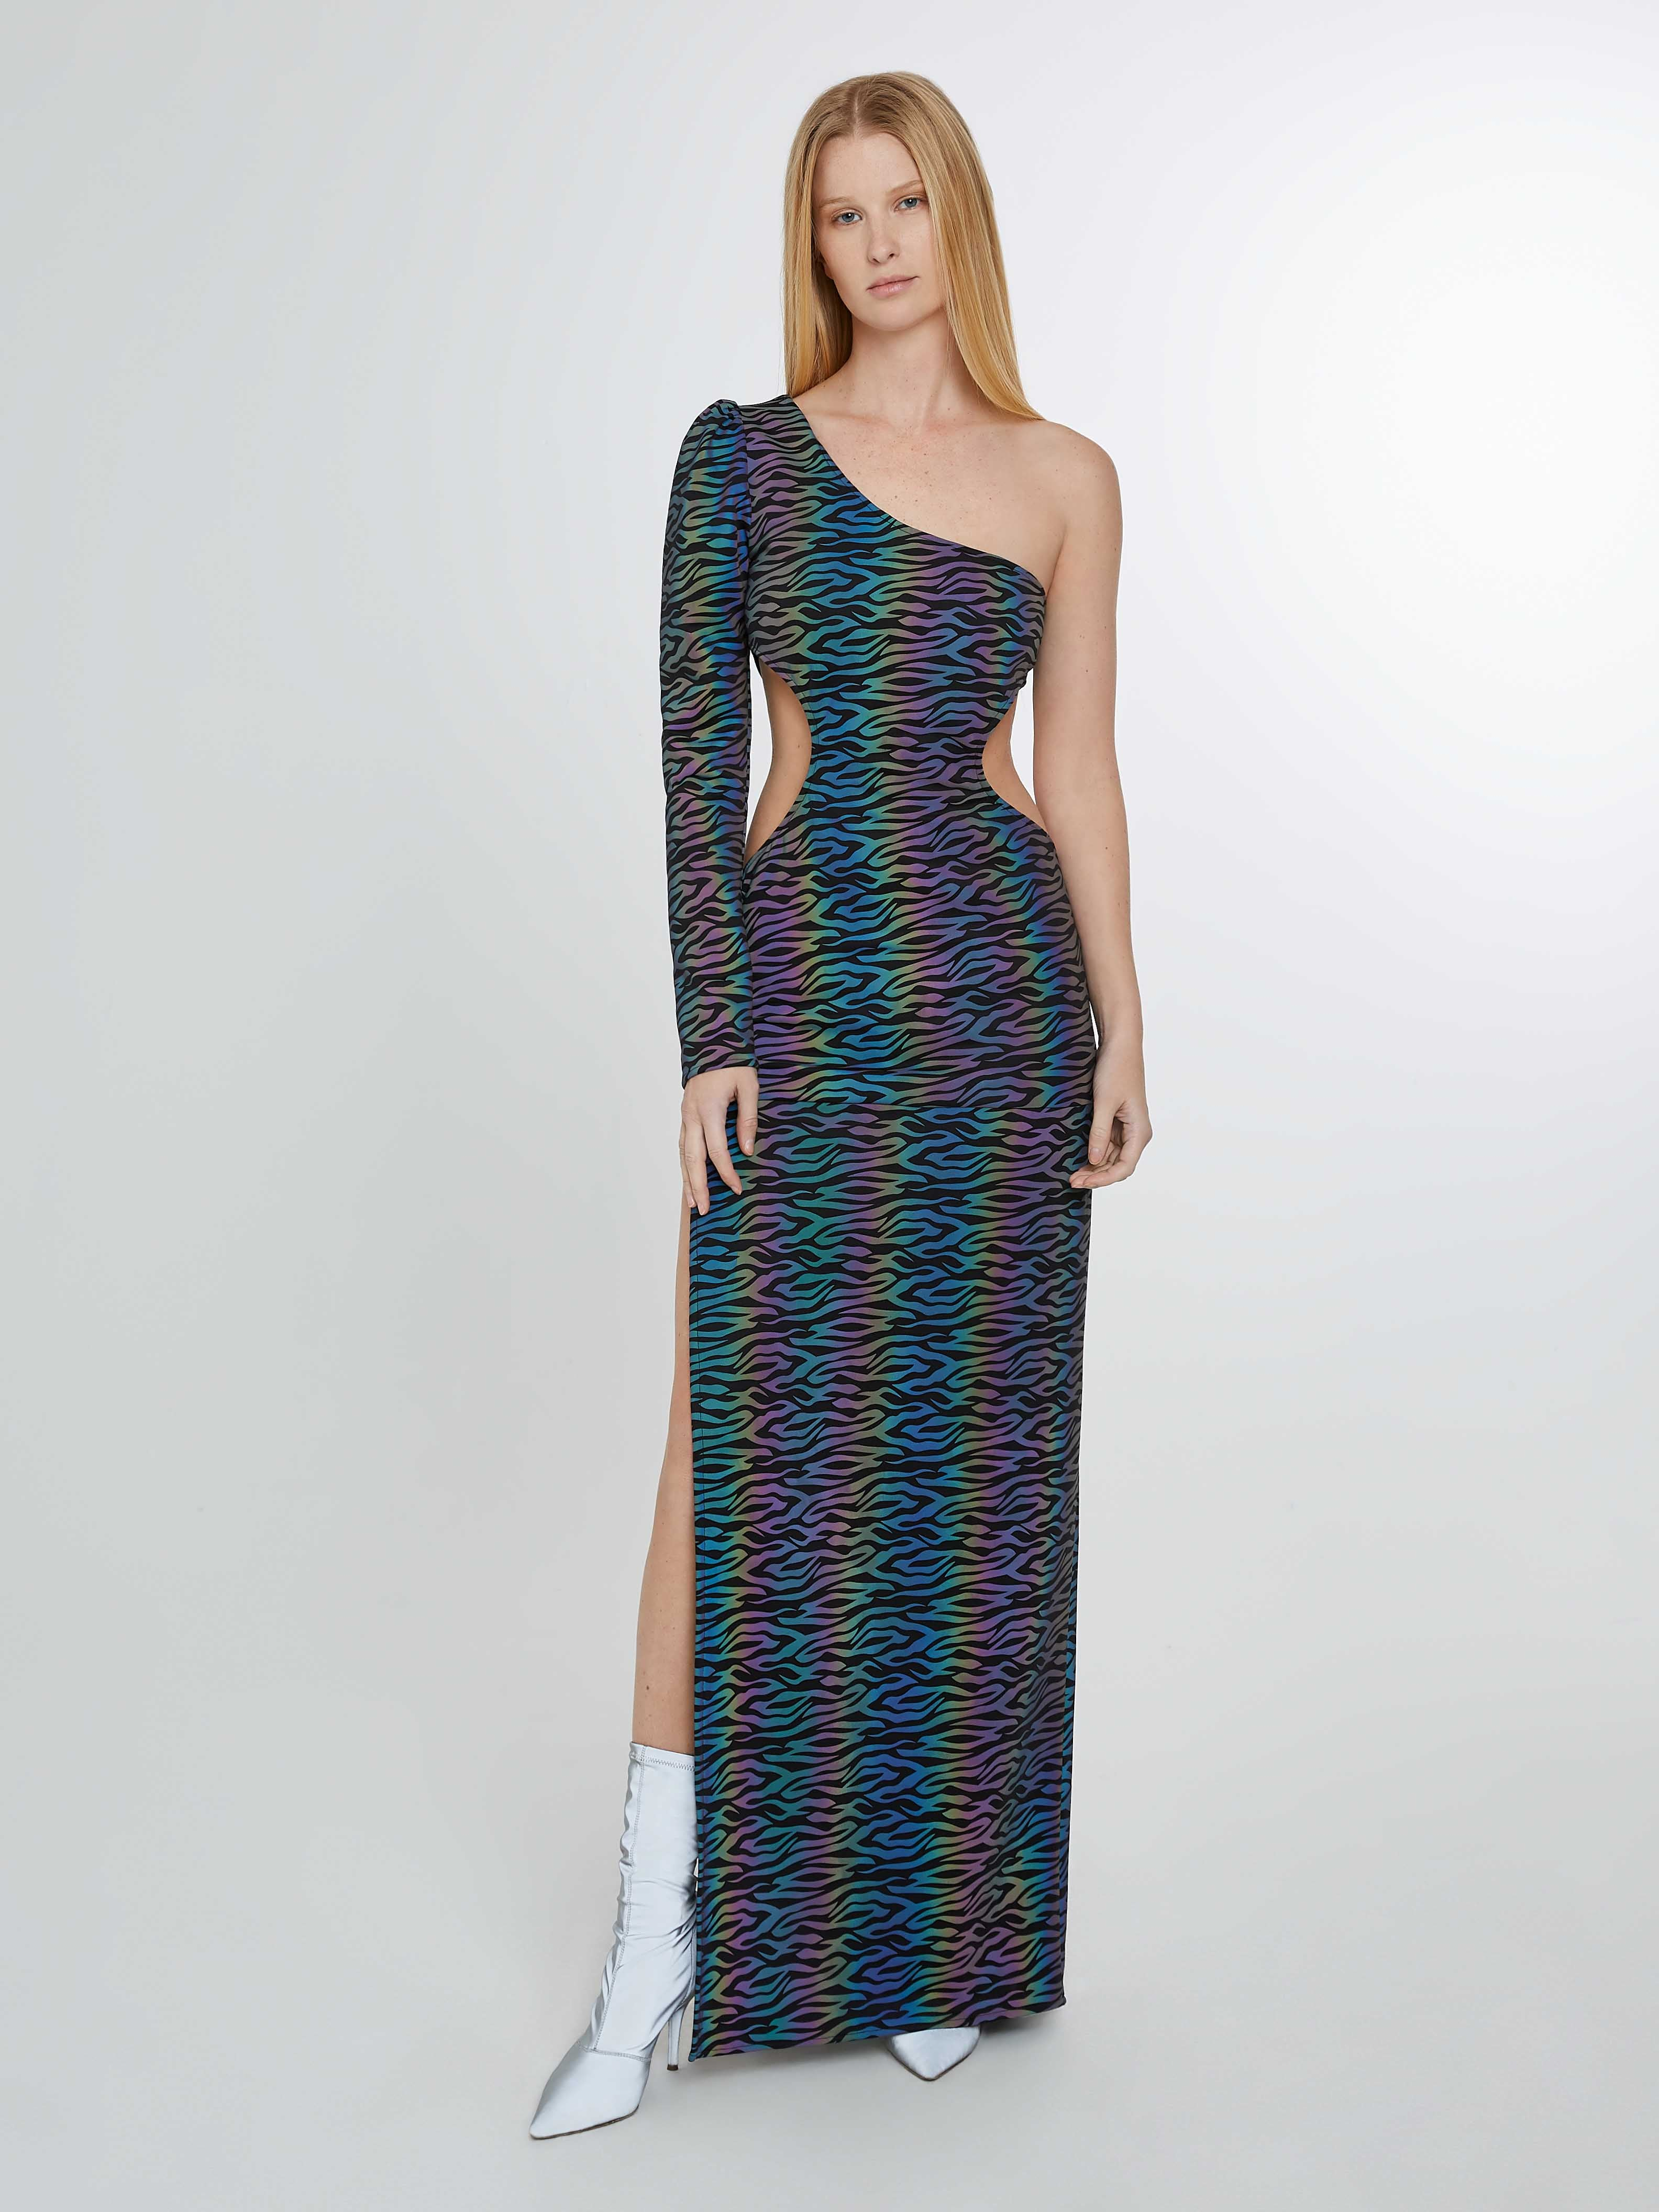 Zebra rainbow reflective long dress with slit